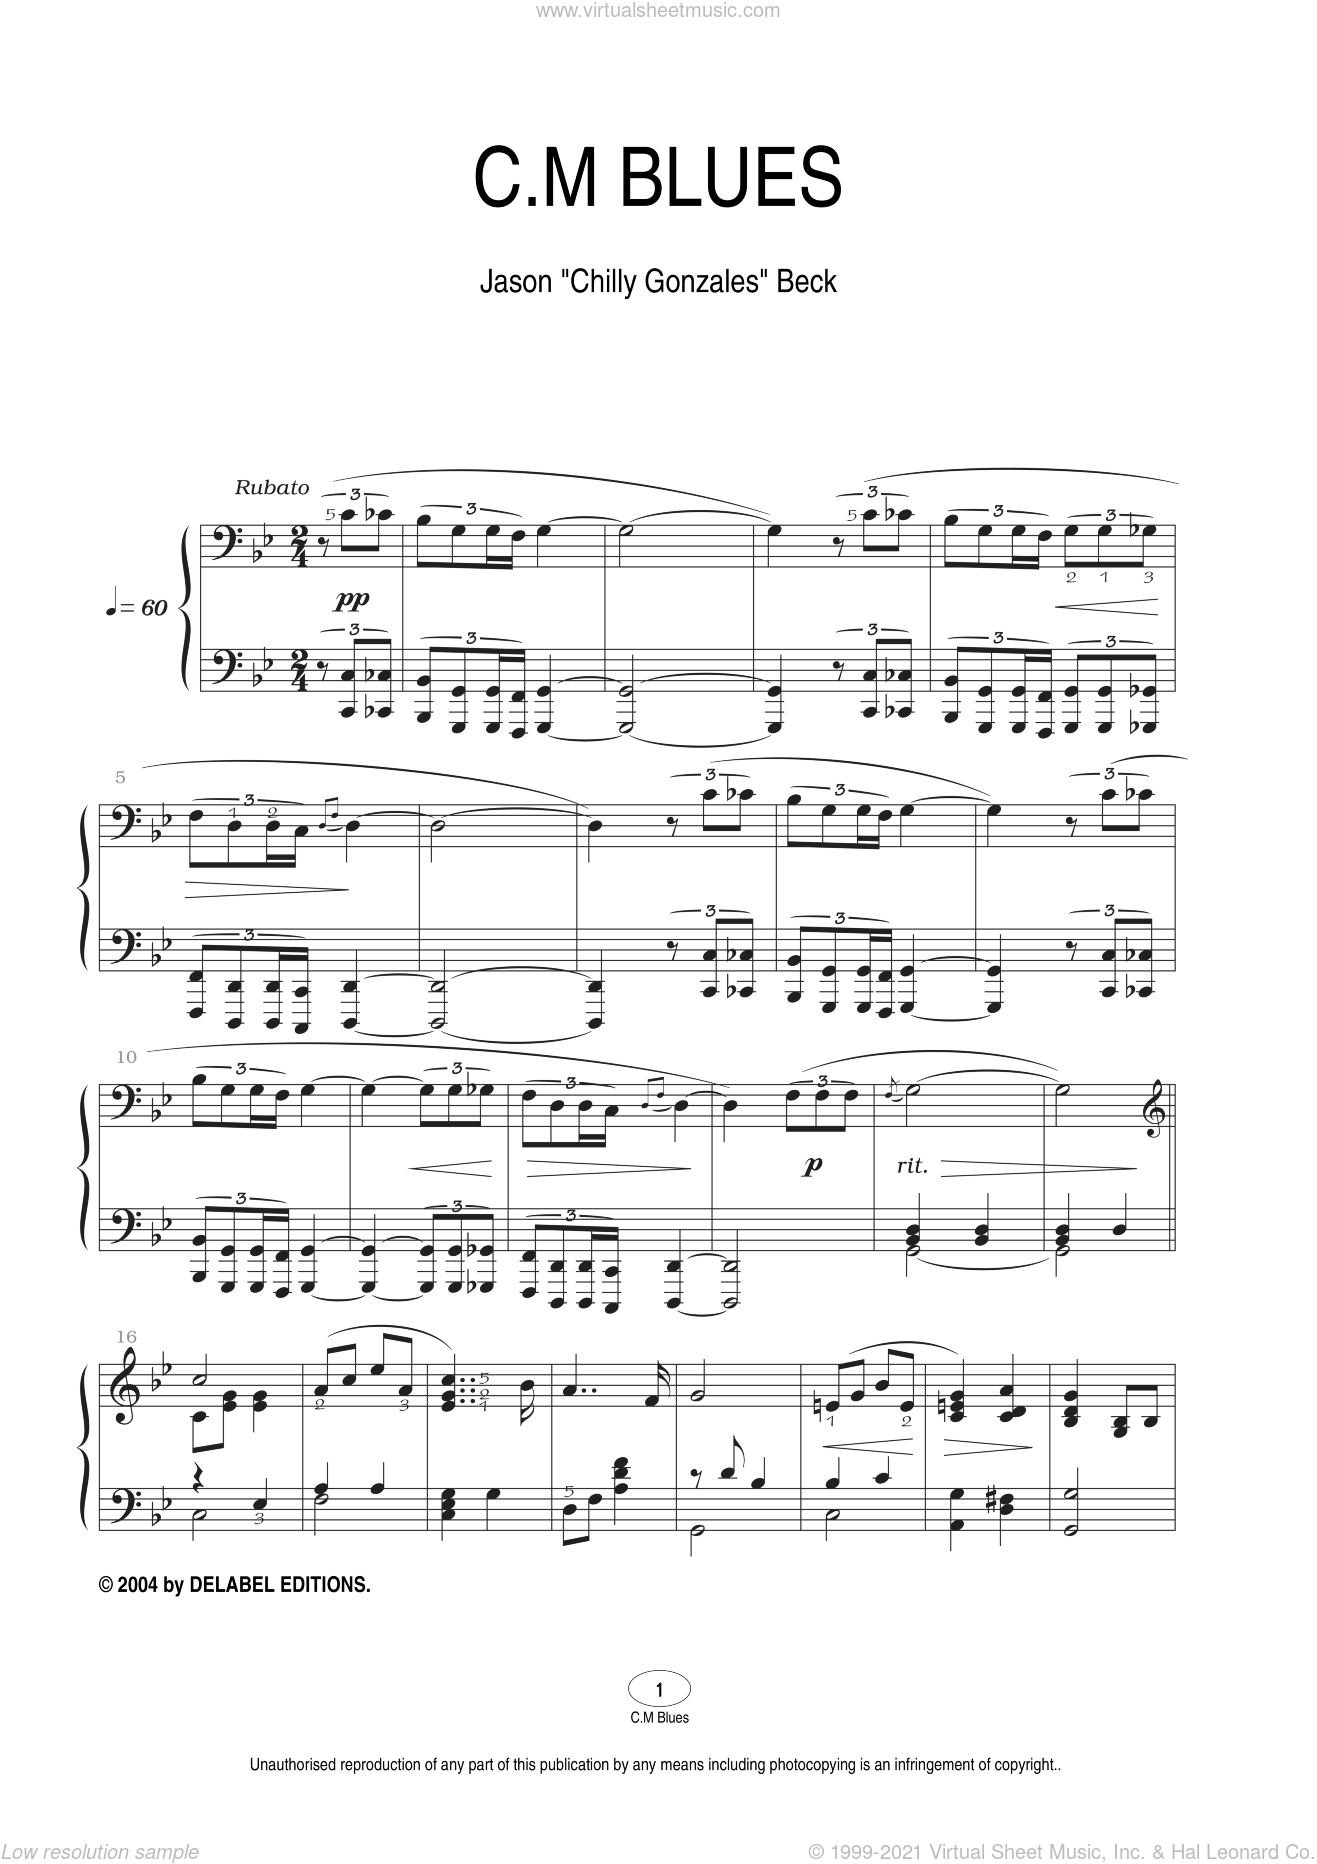 C.M Blues sheet music for piano solo by Chilly Gonzales